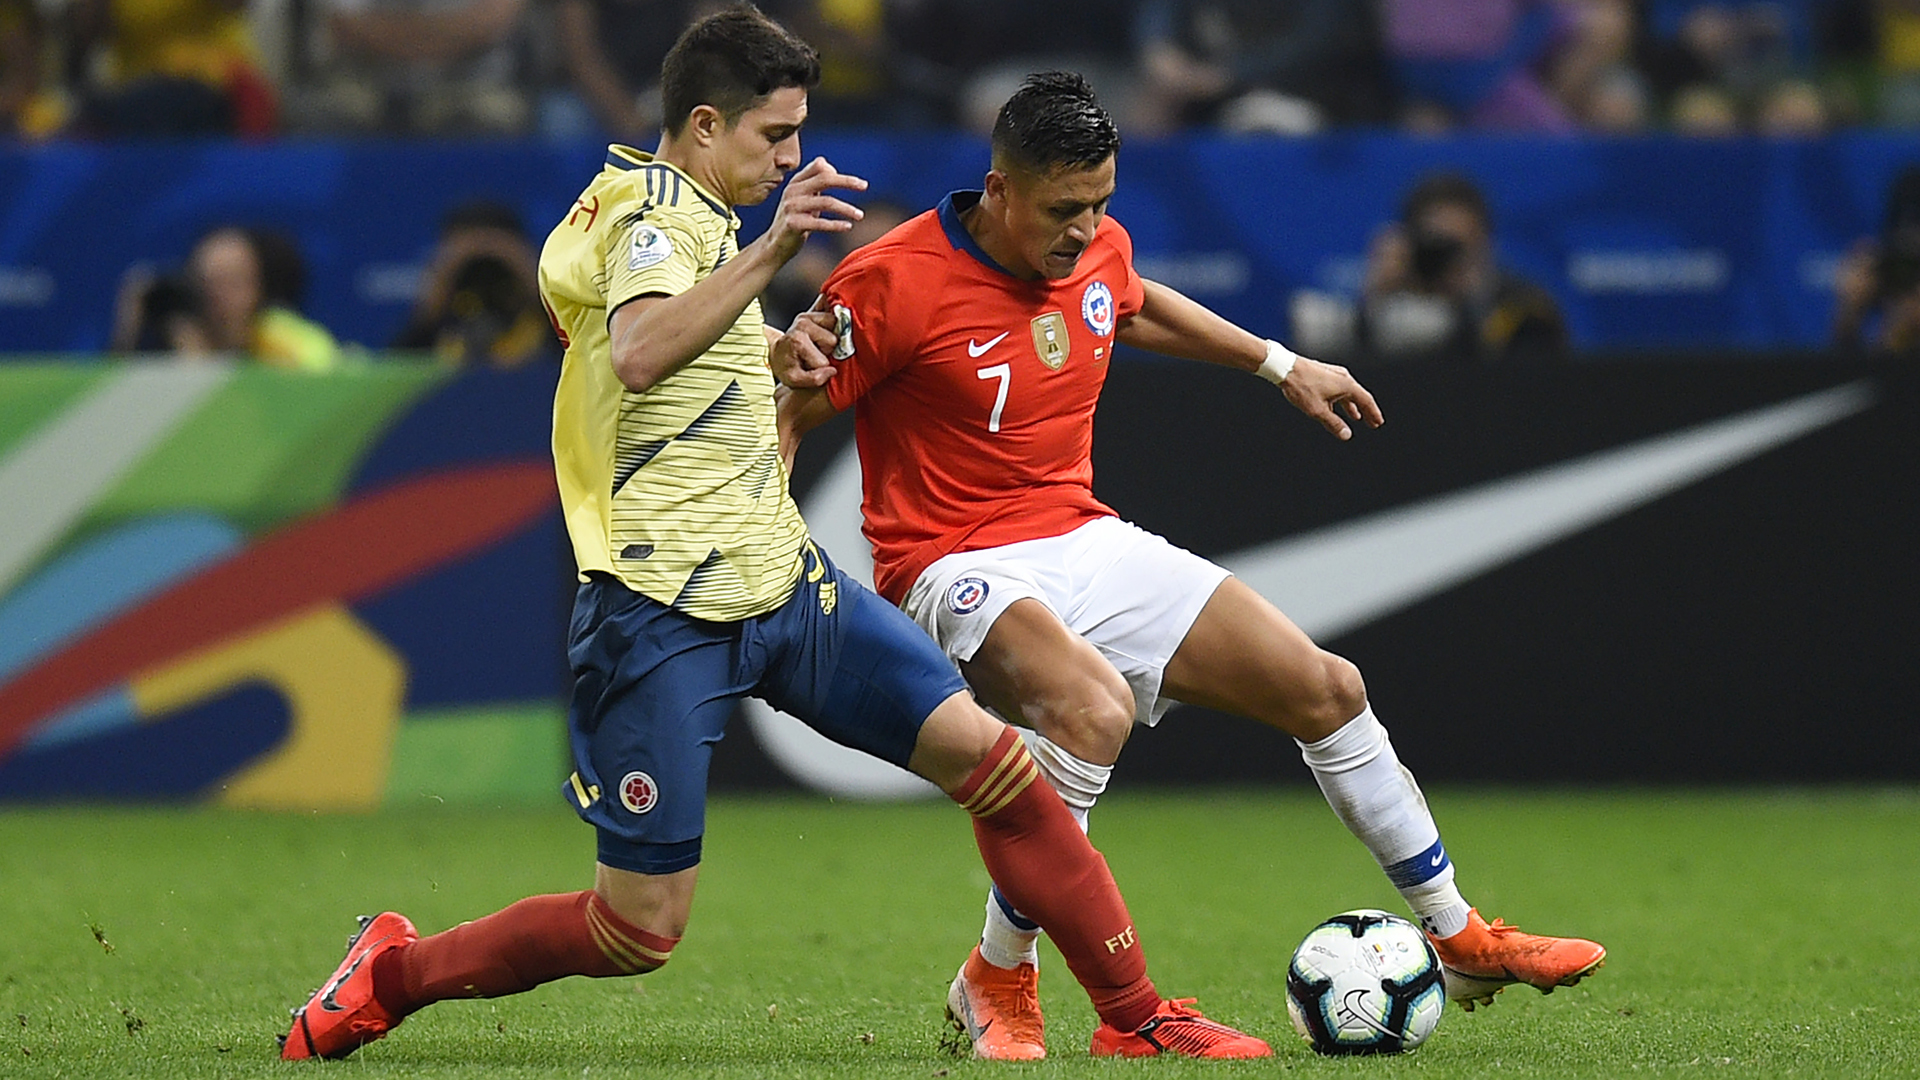 Colombia 0 - 0 Chile | 29 Jun 2019